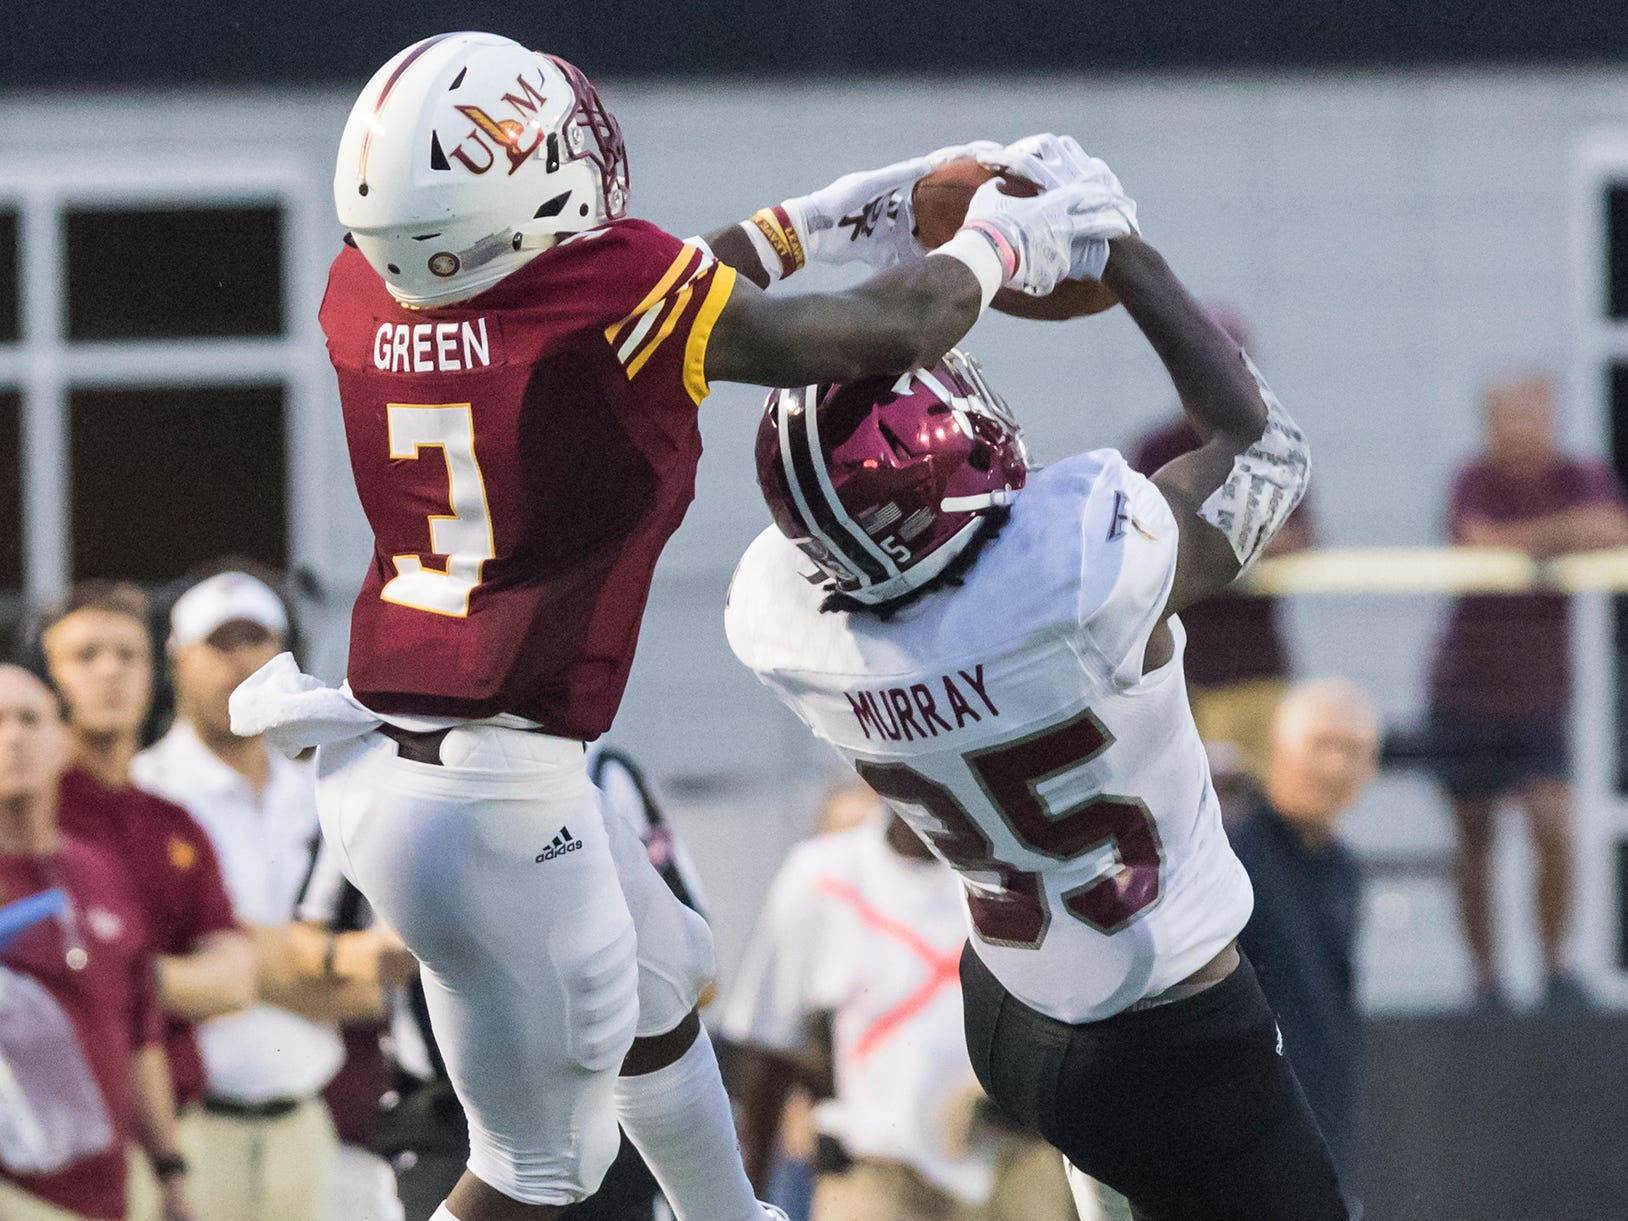 University of Louisiana at Monroe's Marcus Green (3) leaps to make a catch while Troy's Tyler Murray (35) attempts to intercept the ball during the game at Malone Stadium in Monroe, La. on Sept. 22.